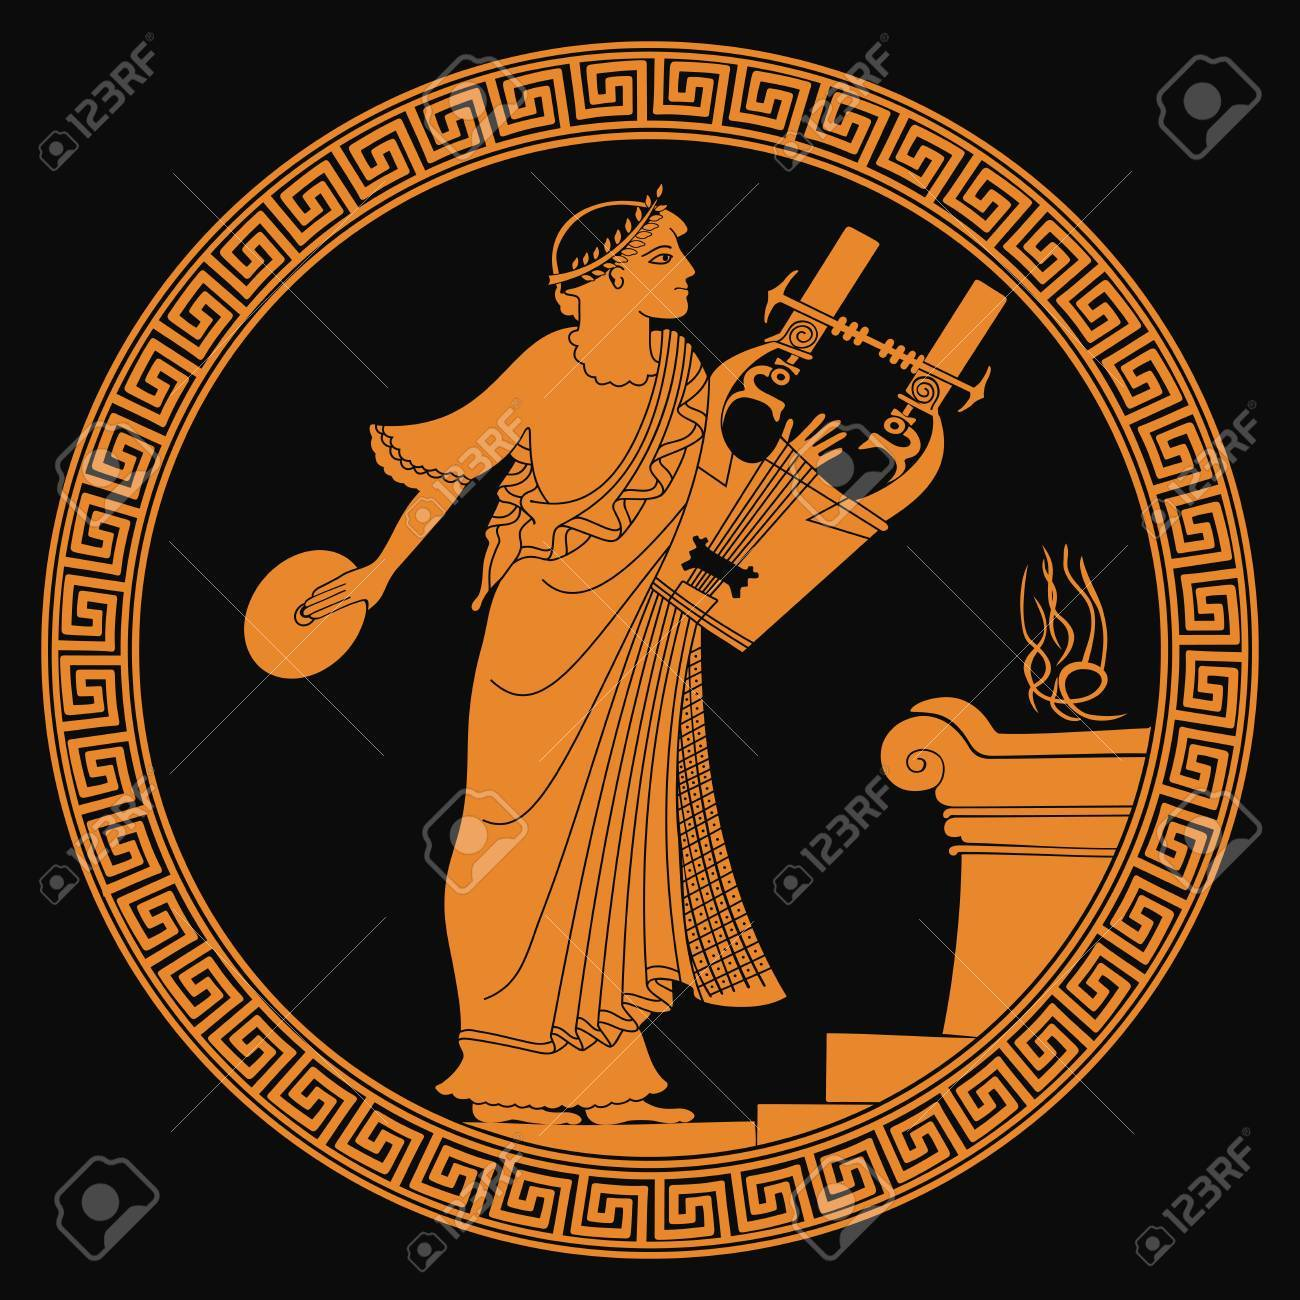 Ancient Greek god of marriage Hymen with a musical instrument